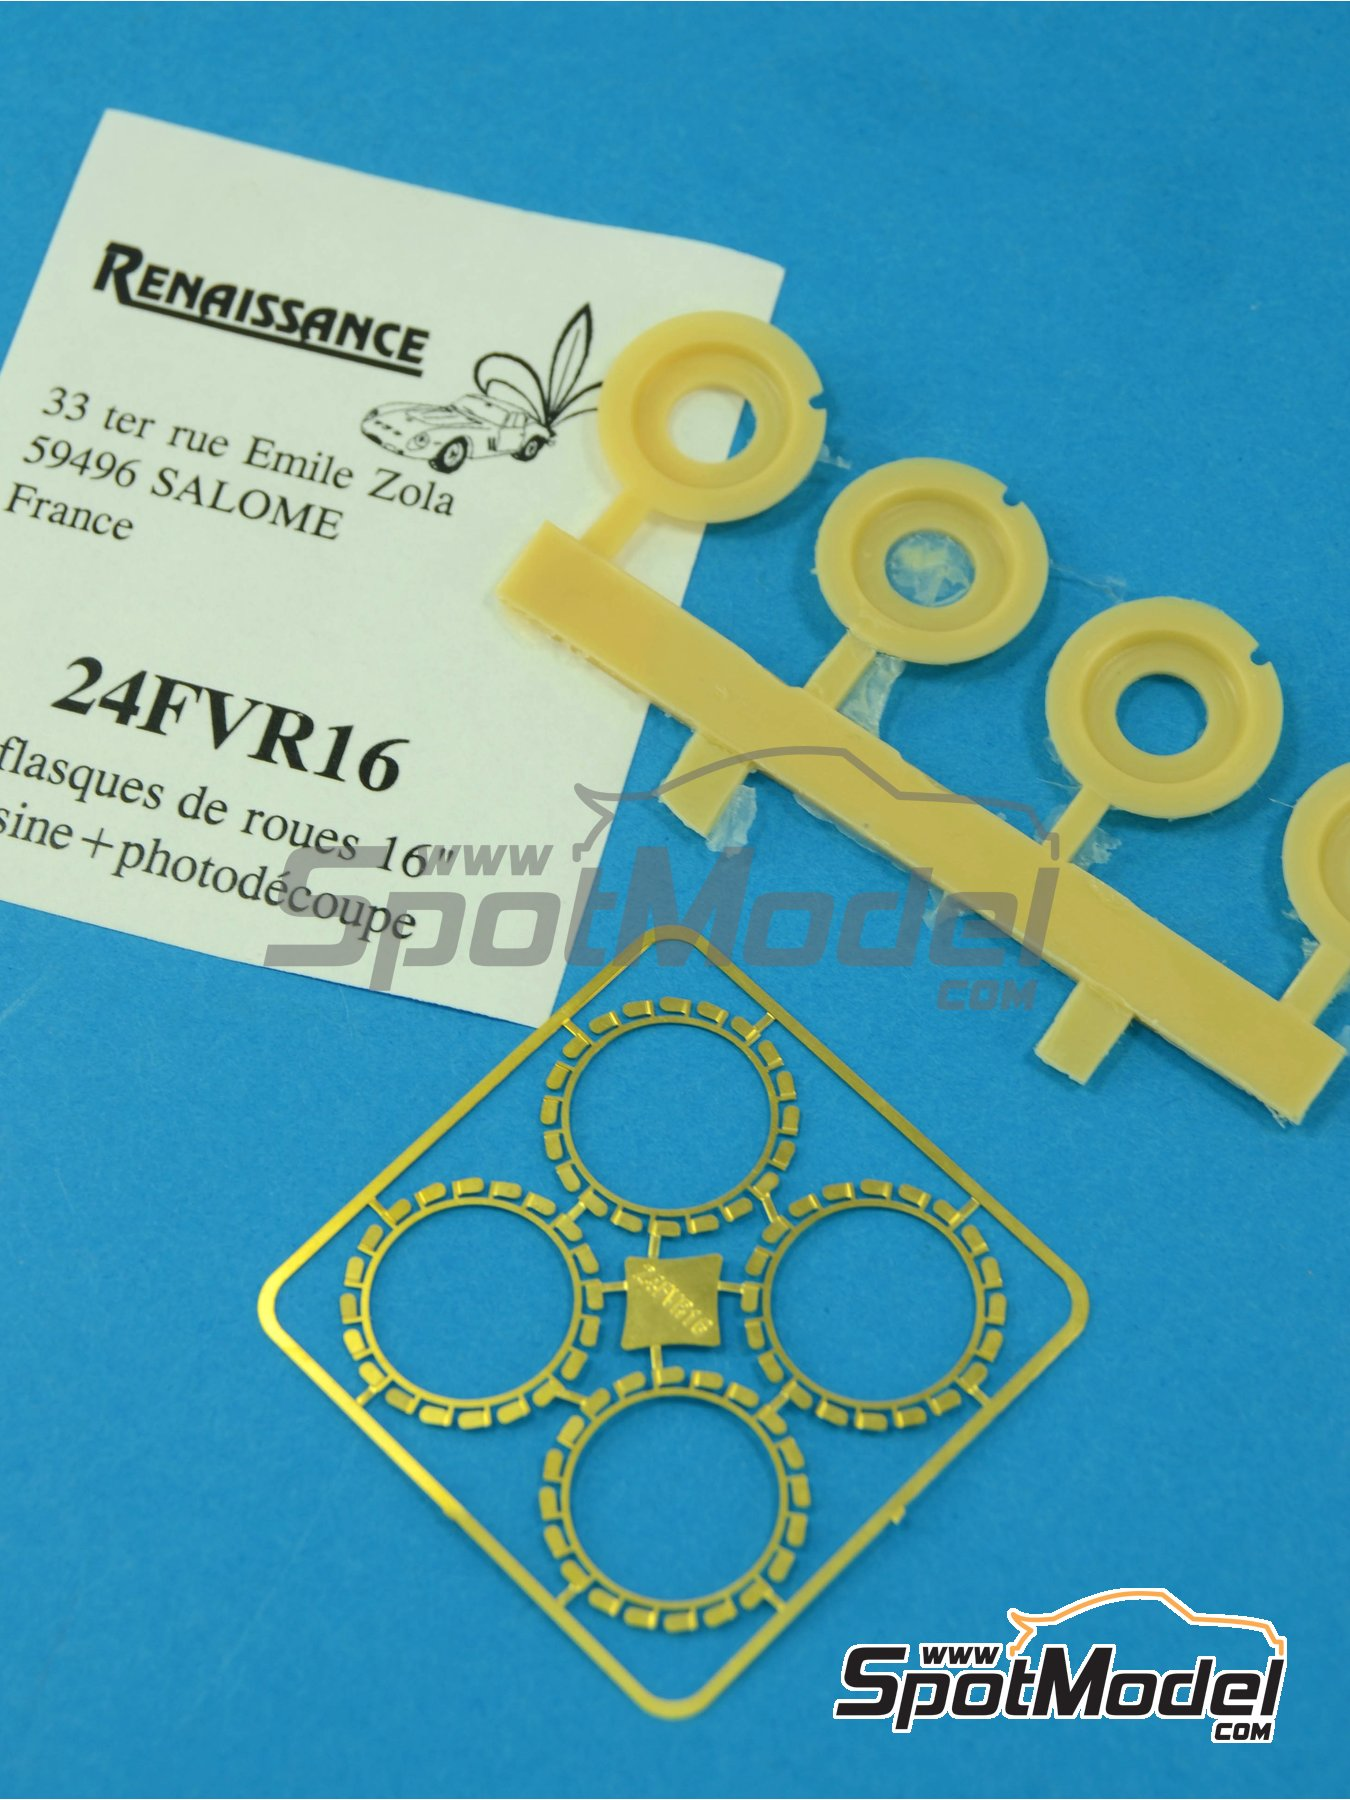 Flasques for 16 inches rims | Detail in 1/24 scale manufactured by Renaissance Models (ref.24FVR16) image